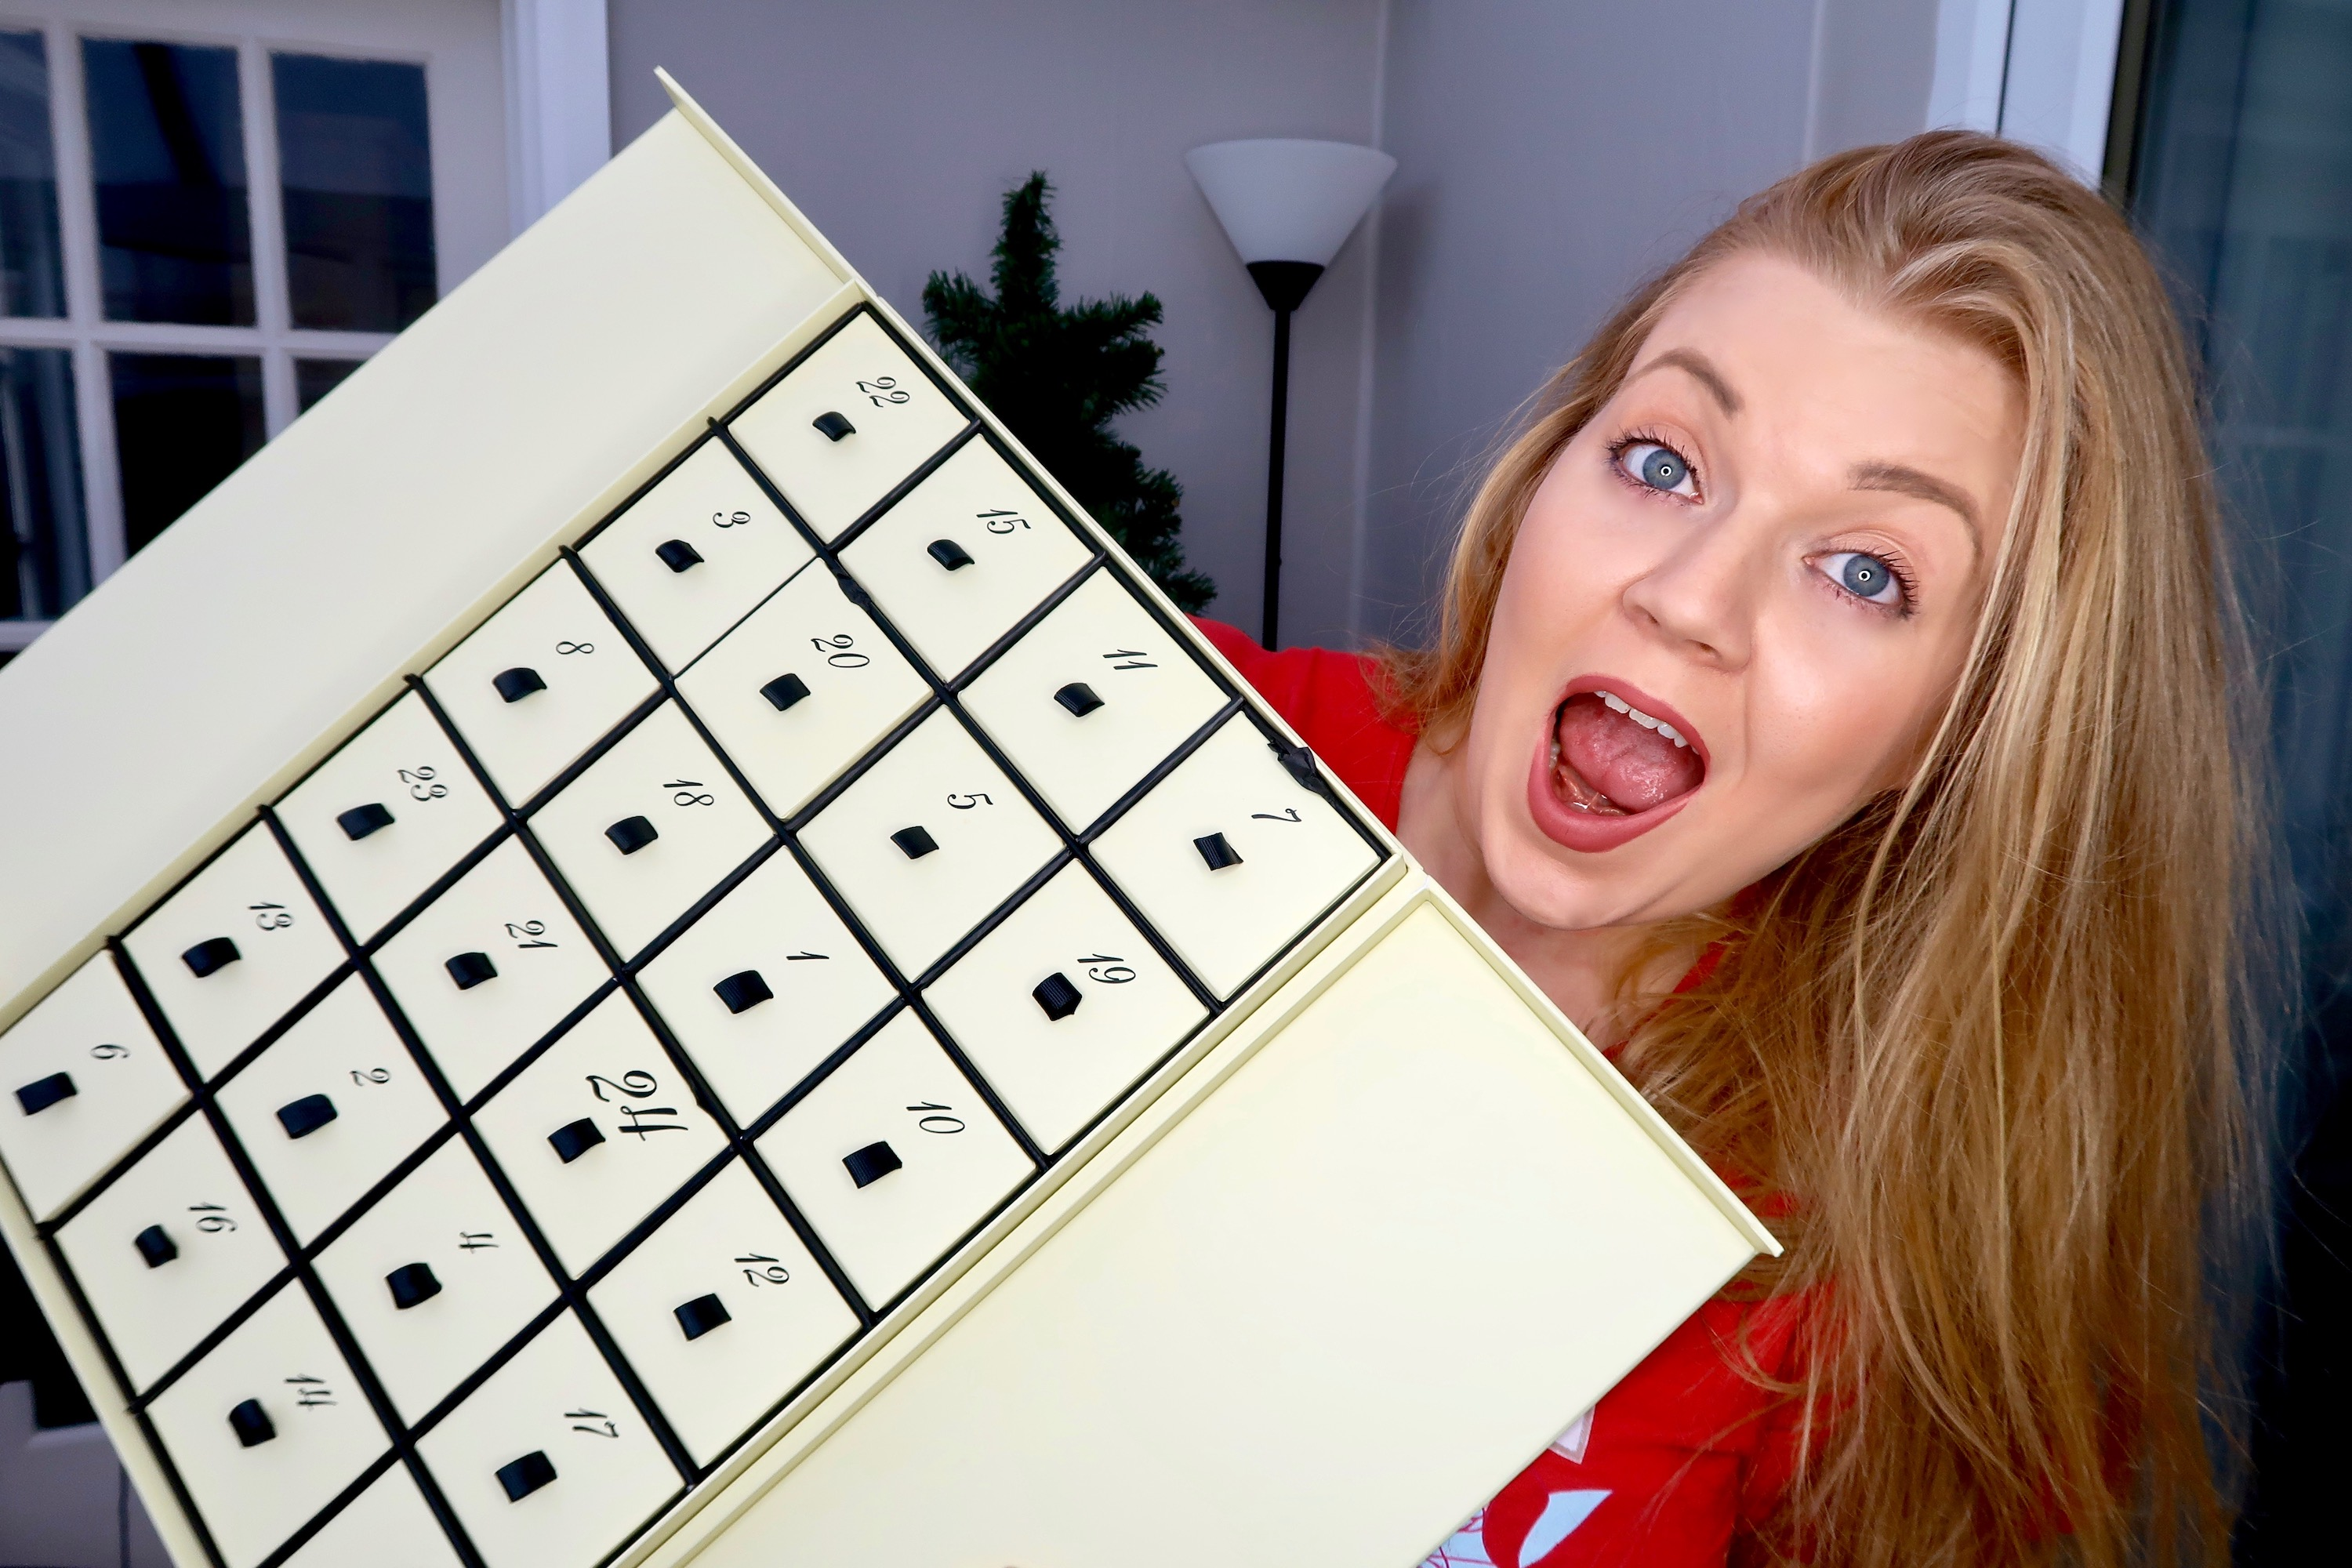 Aldi launch their Luxury Countdown to Christmas advent calendar, priced at £49.99 and a dupe of Jo Malone's sold out £300 calendar. We unbox it to see if it's worth the hype | Elle Blonde Luxury Lifestyle Destination Blog